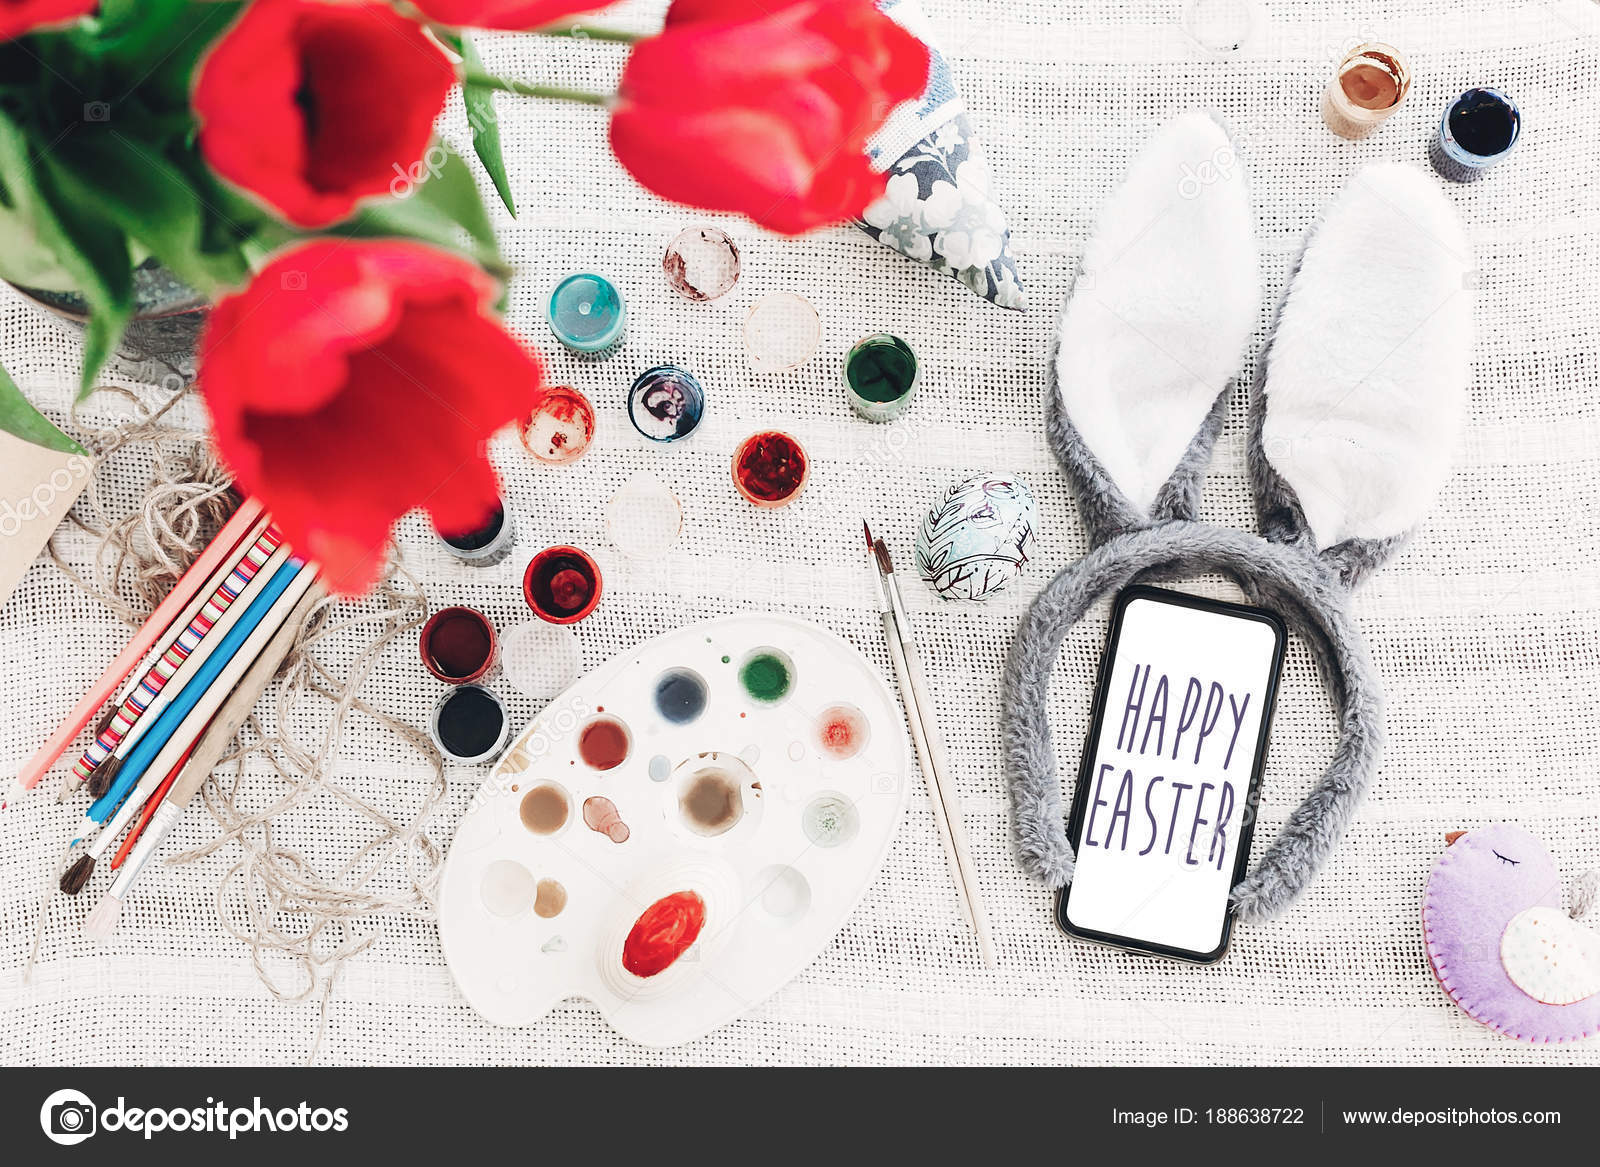 Happy Easter Text Phone Screen Season Greetings Card Bunny Ears